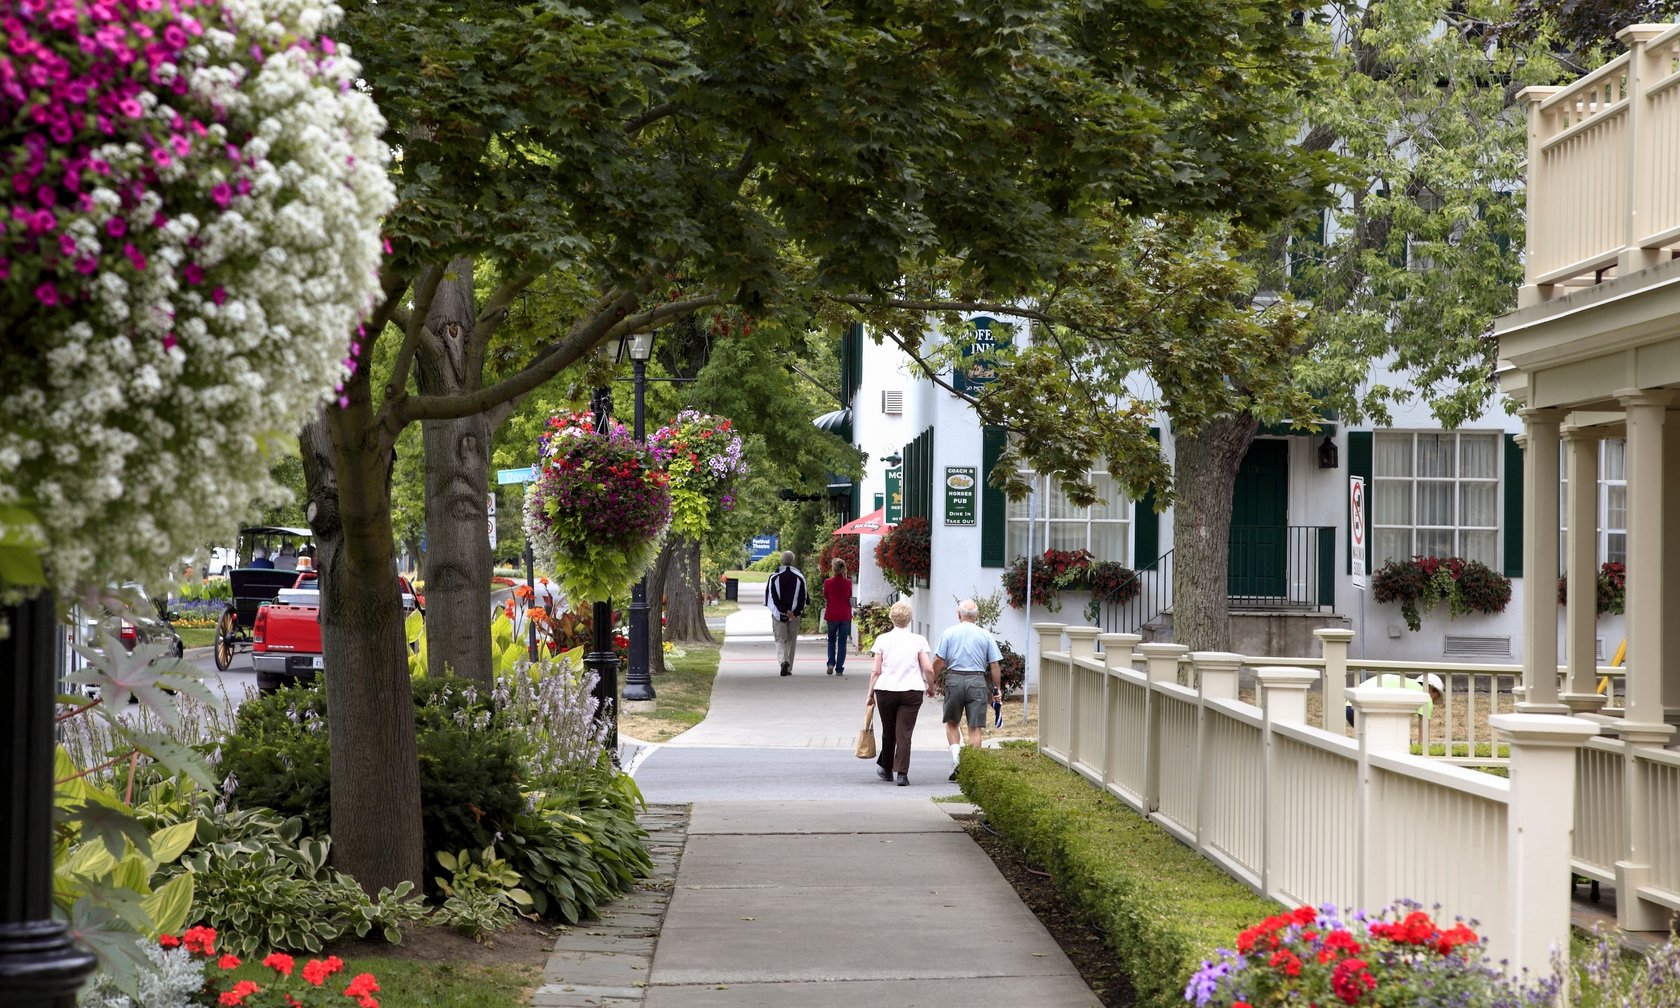 Vacation rental cottages in Niagara-on-the-Lake